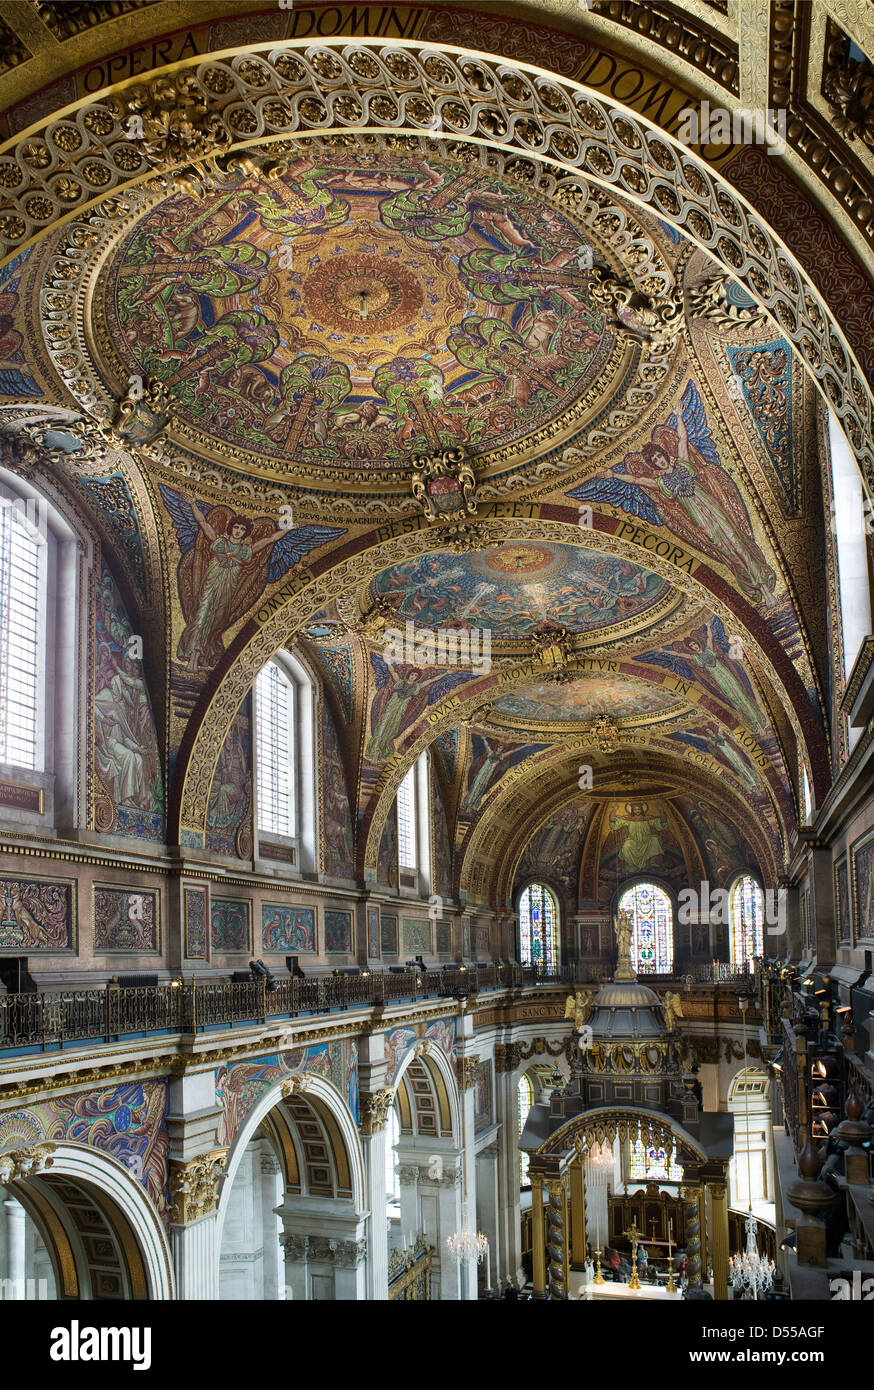 Saint Paul's Cathedral, London. Mosaics in the saucer domes of the quire or choir, - Stock Image